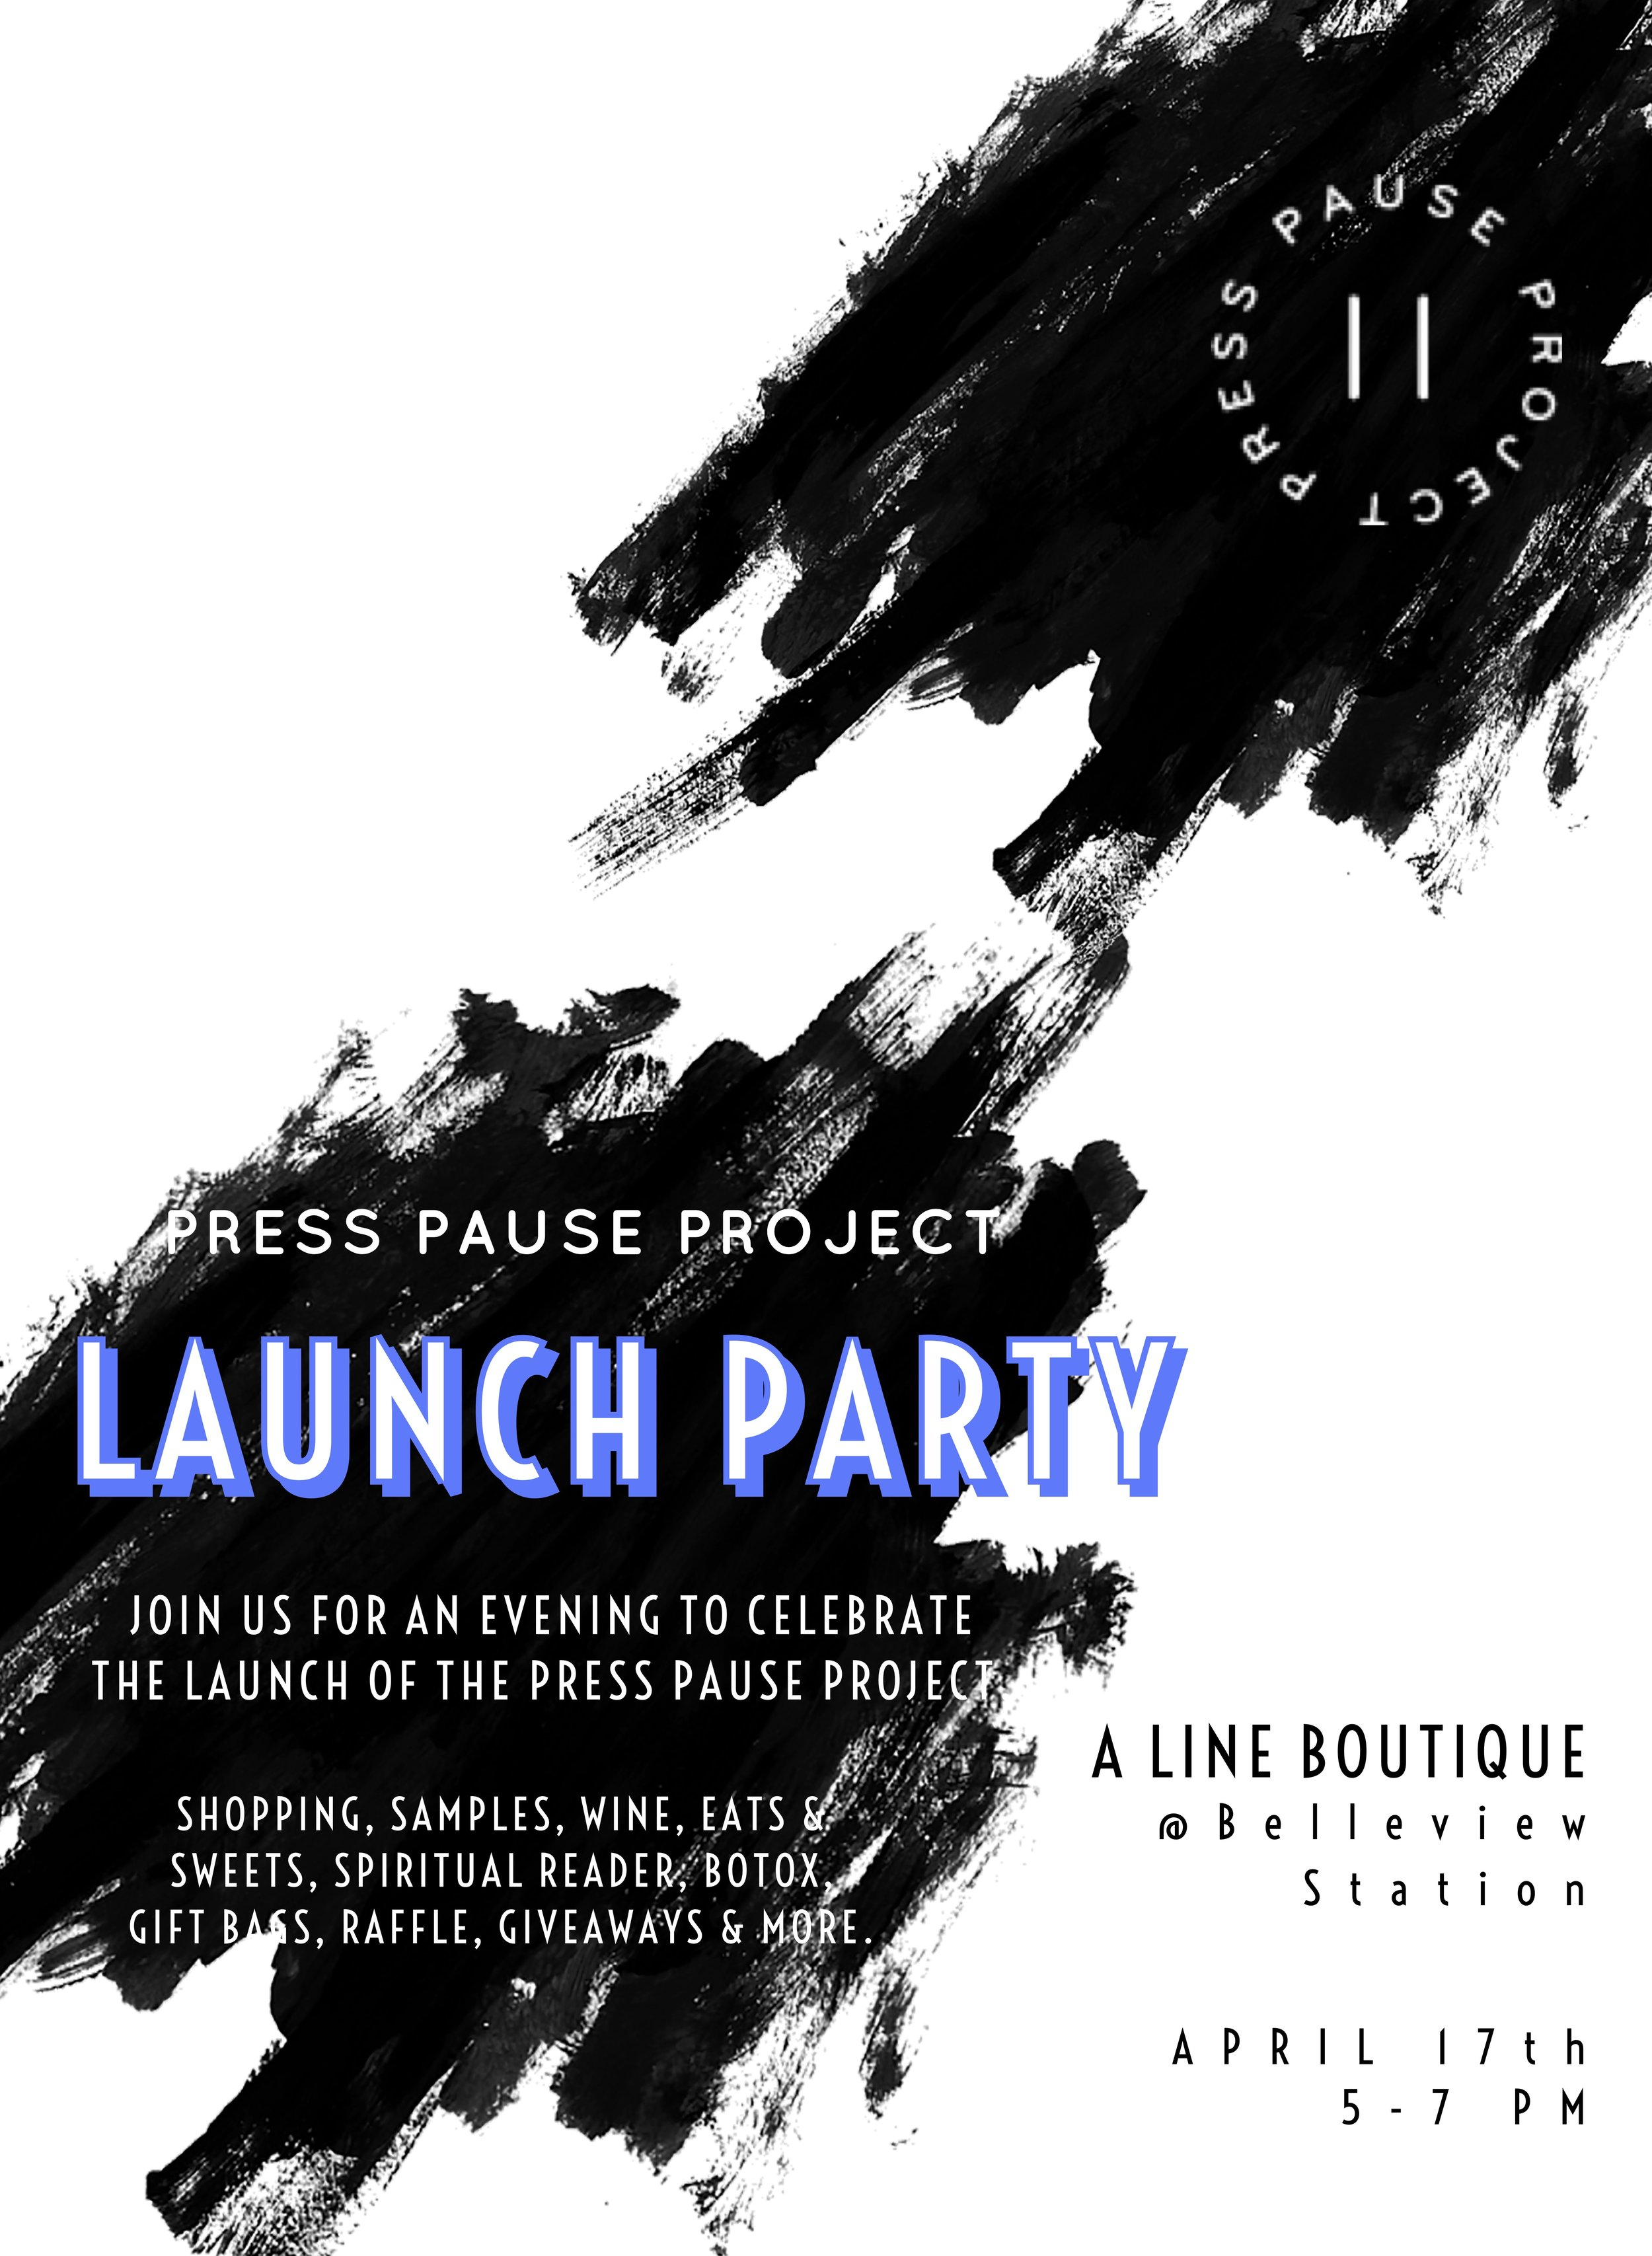 Press Pause Launch Party Invite (1).jpg